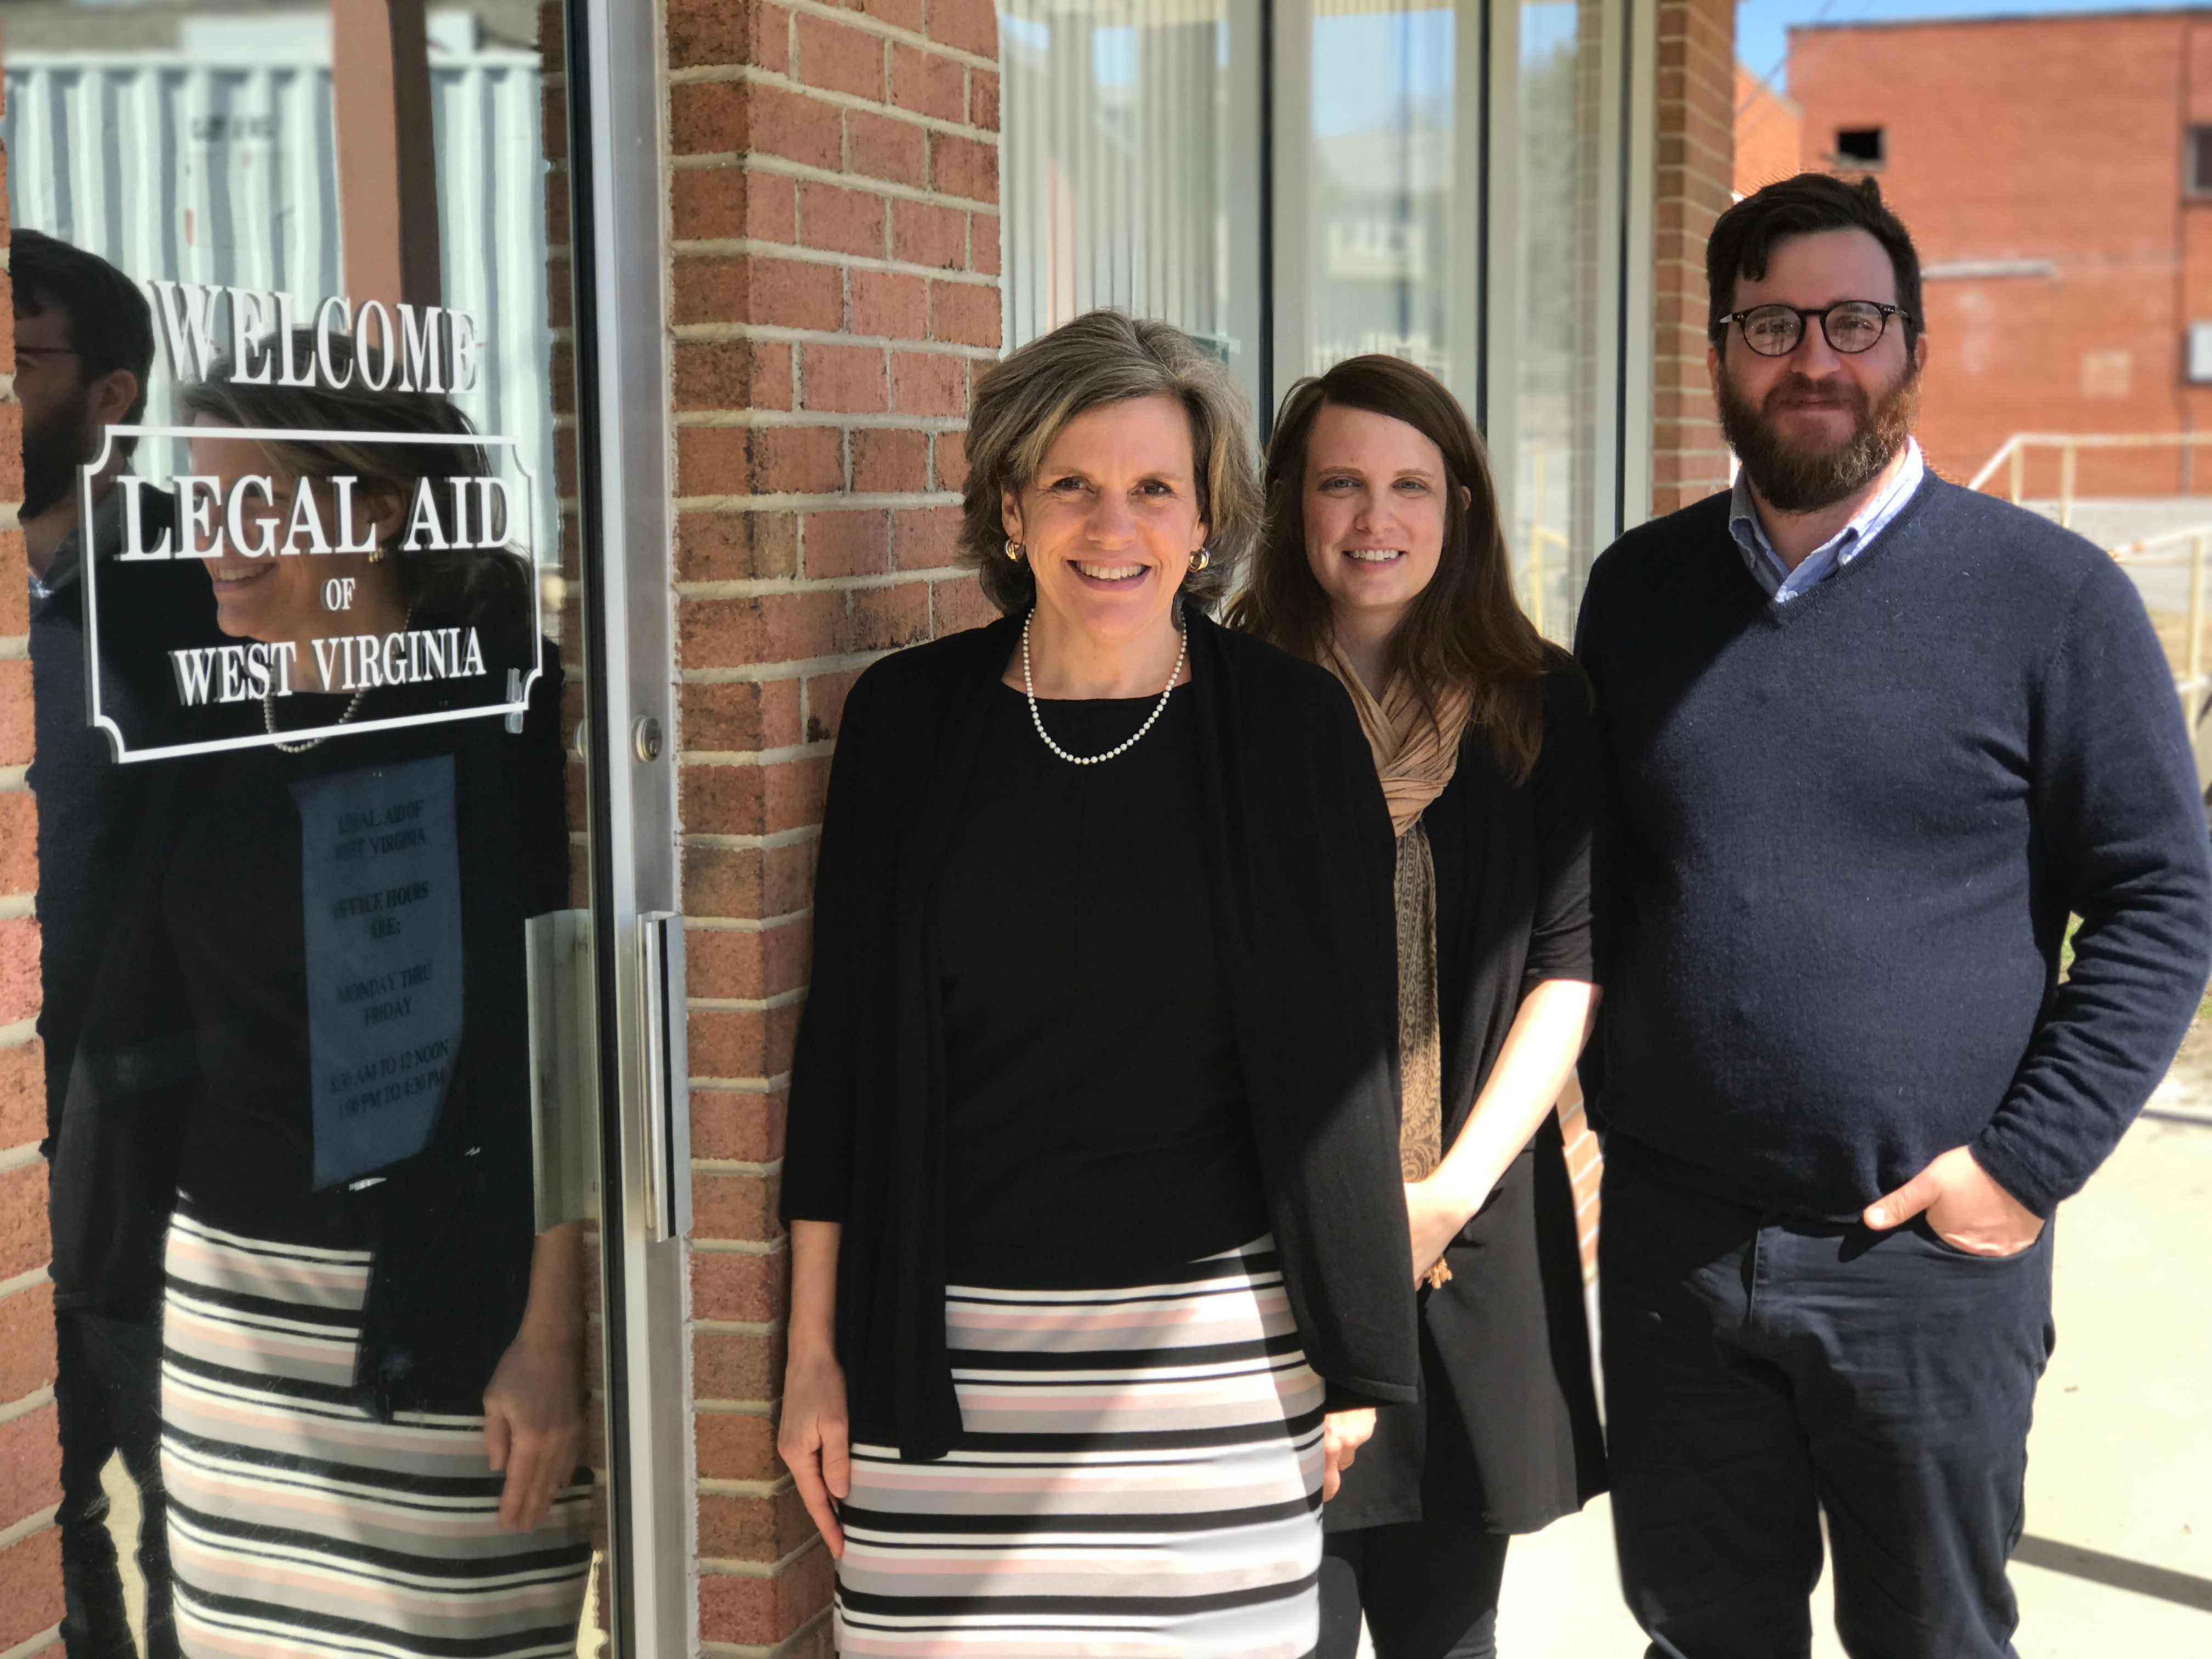 Kelly Beck, Erin Clark and Matthew Jividen staff Legal Aid of West Virginia's office in Martinsburg.